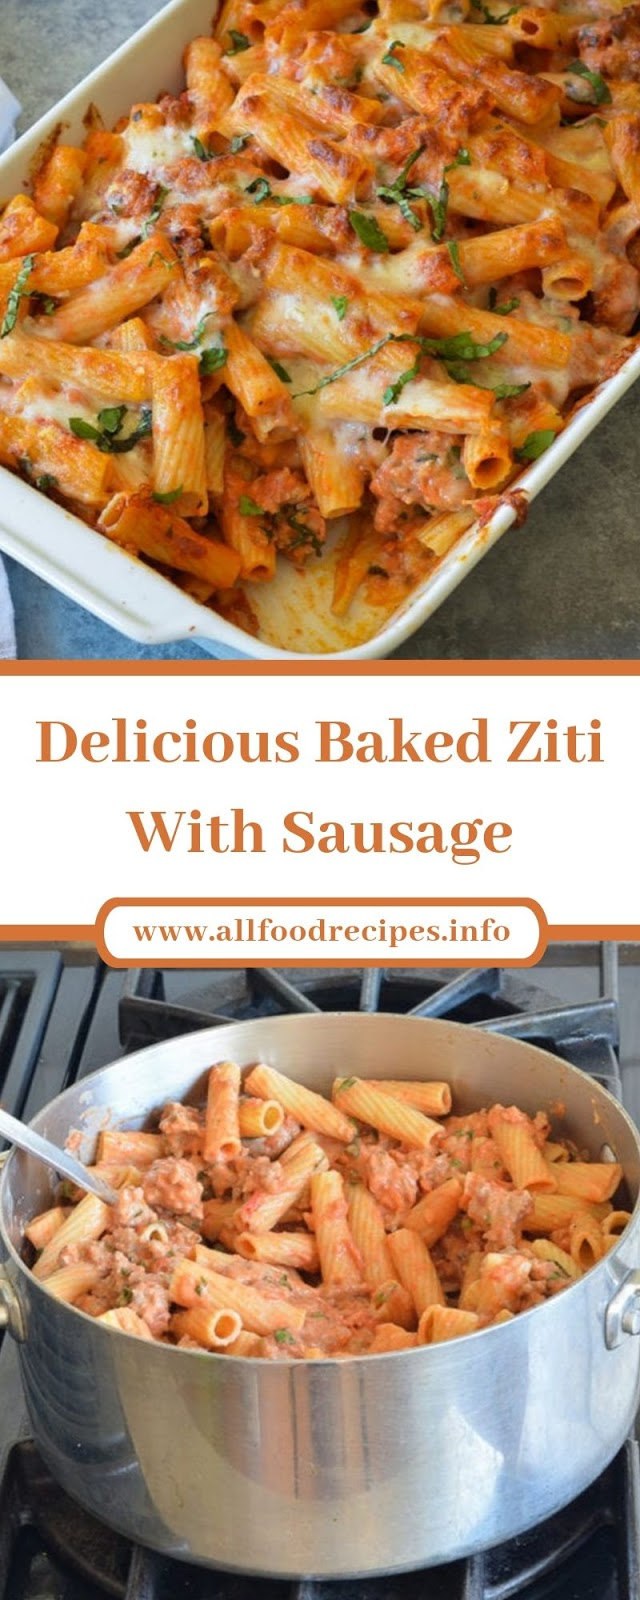 Delicious Baked Ziti With Sausage